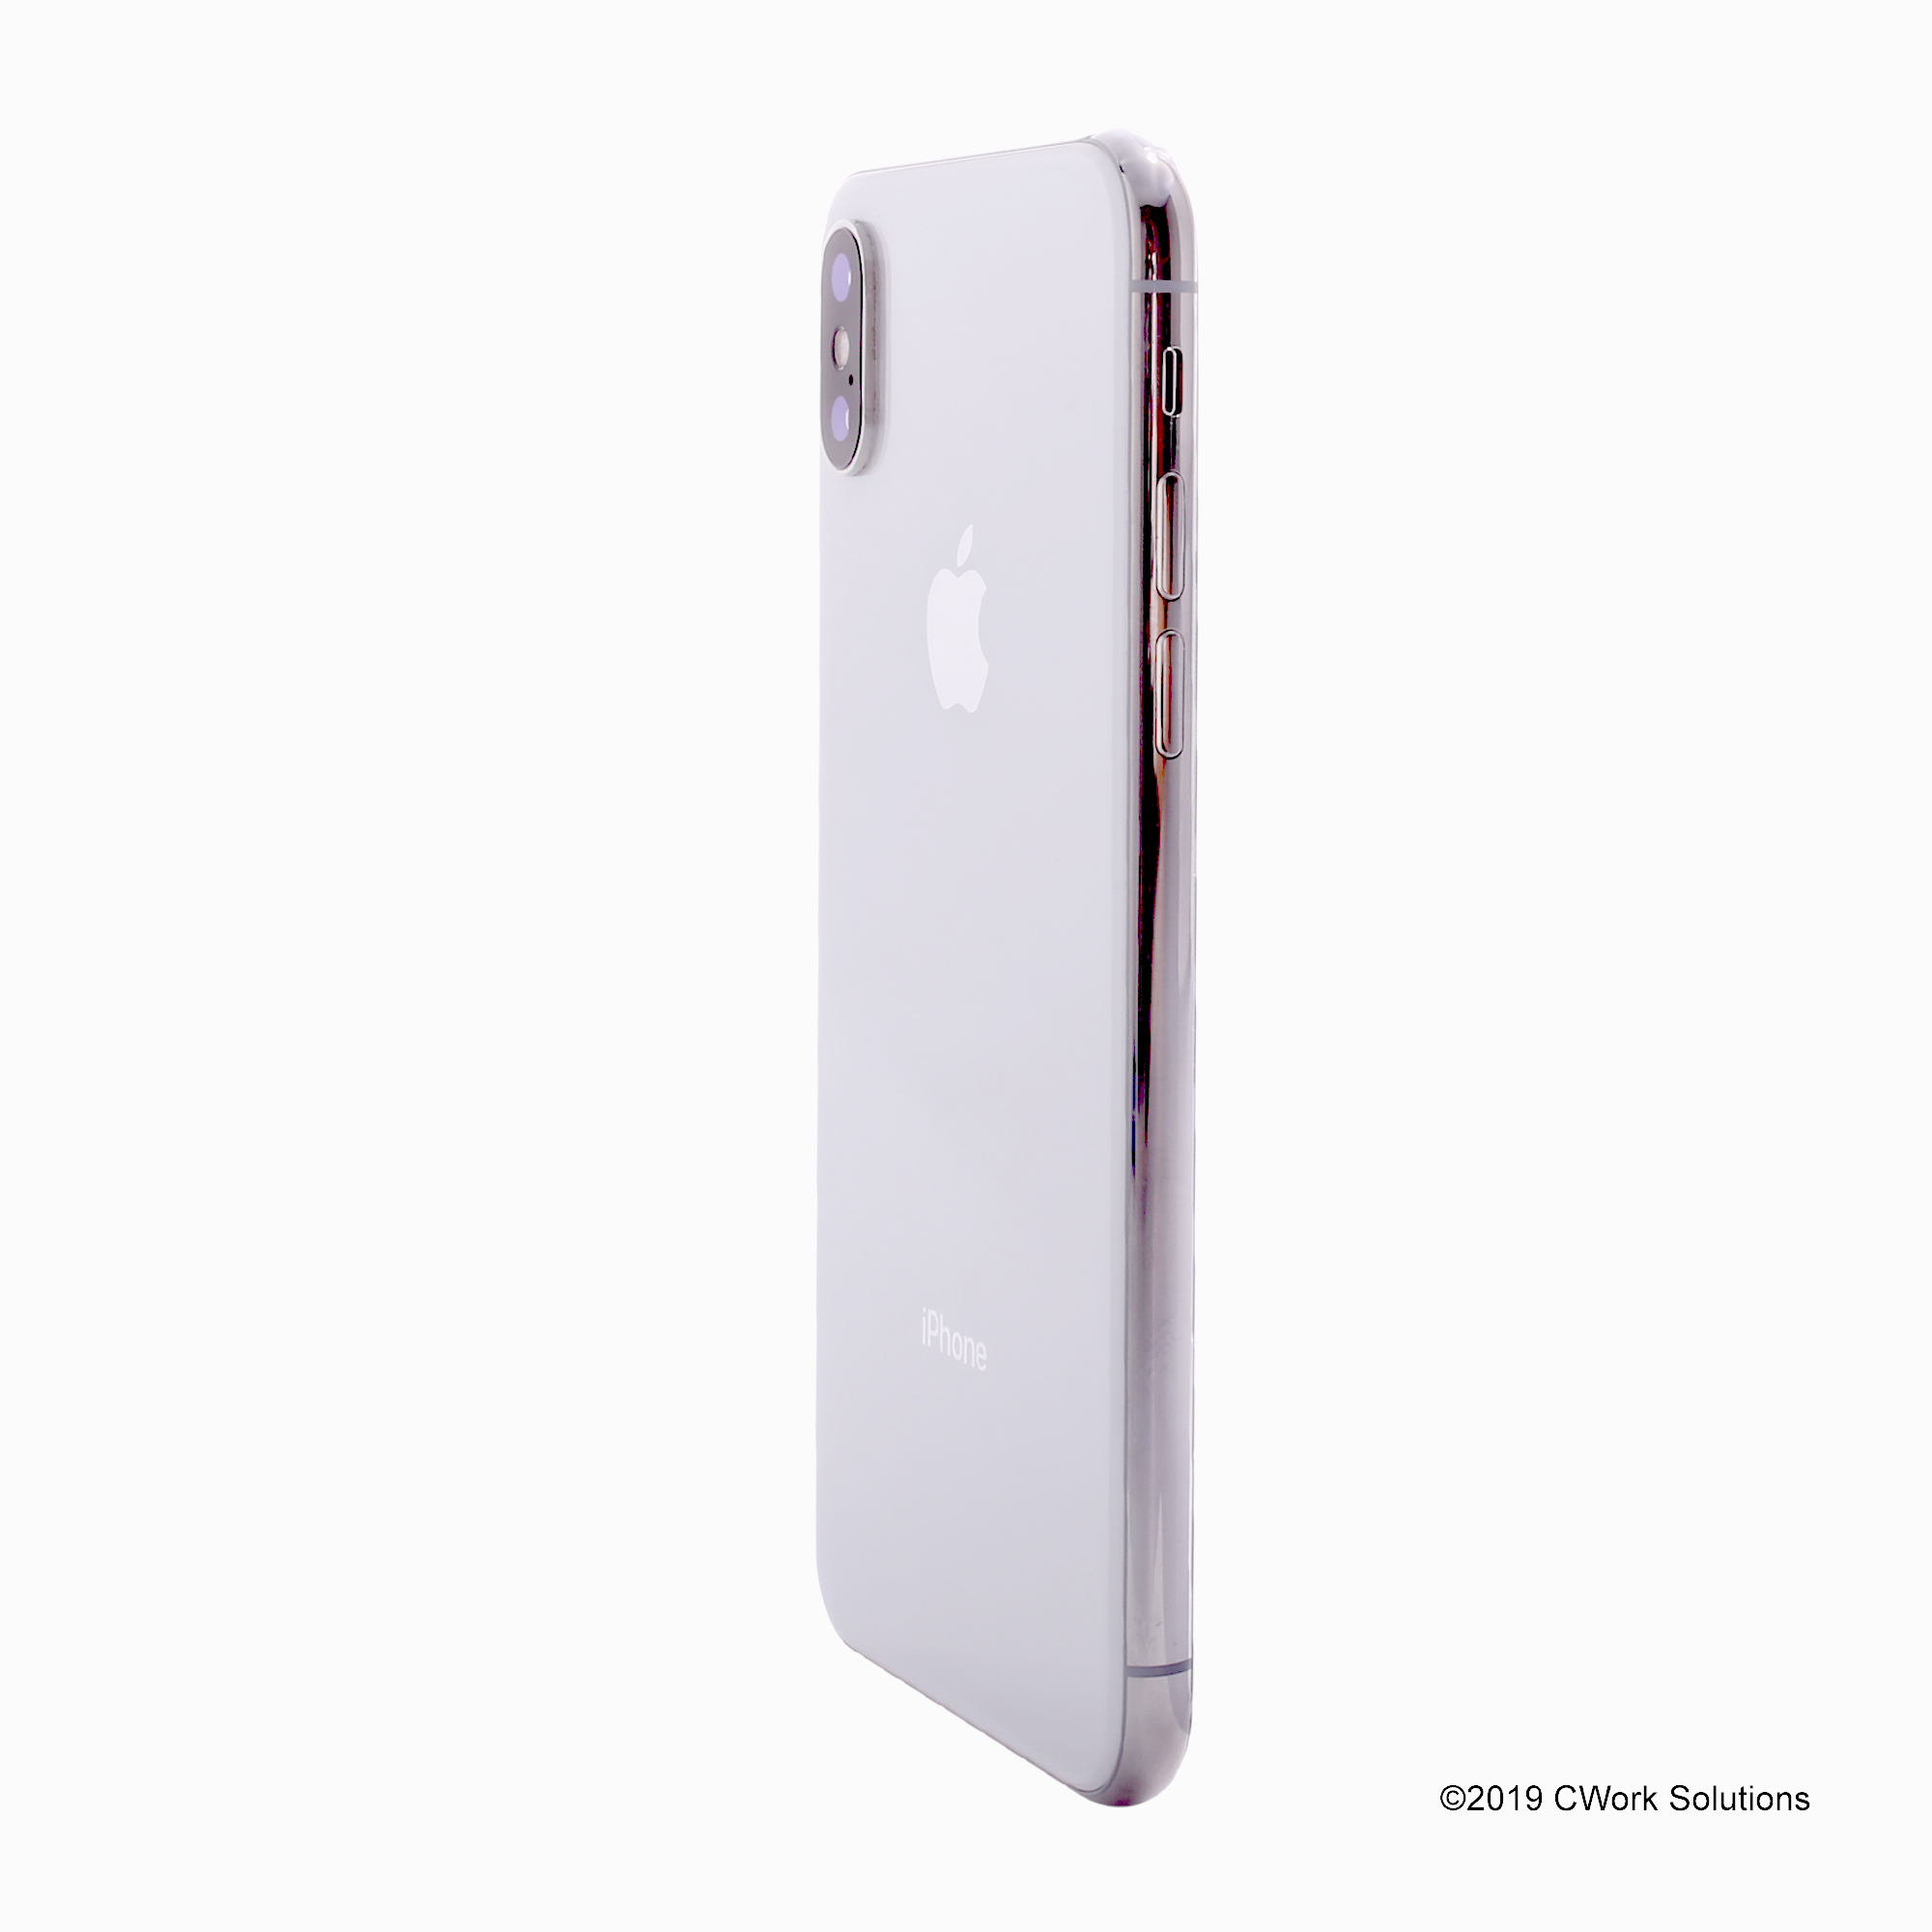 Apple-iPhone-X-a1901-64GB-AT-amp-T-T-Mobile-GSM-Unlocked-Good thumbnail 8